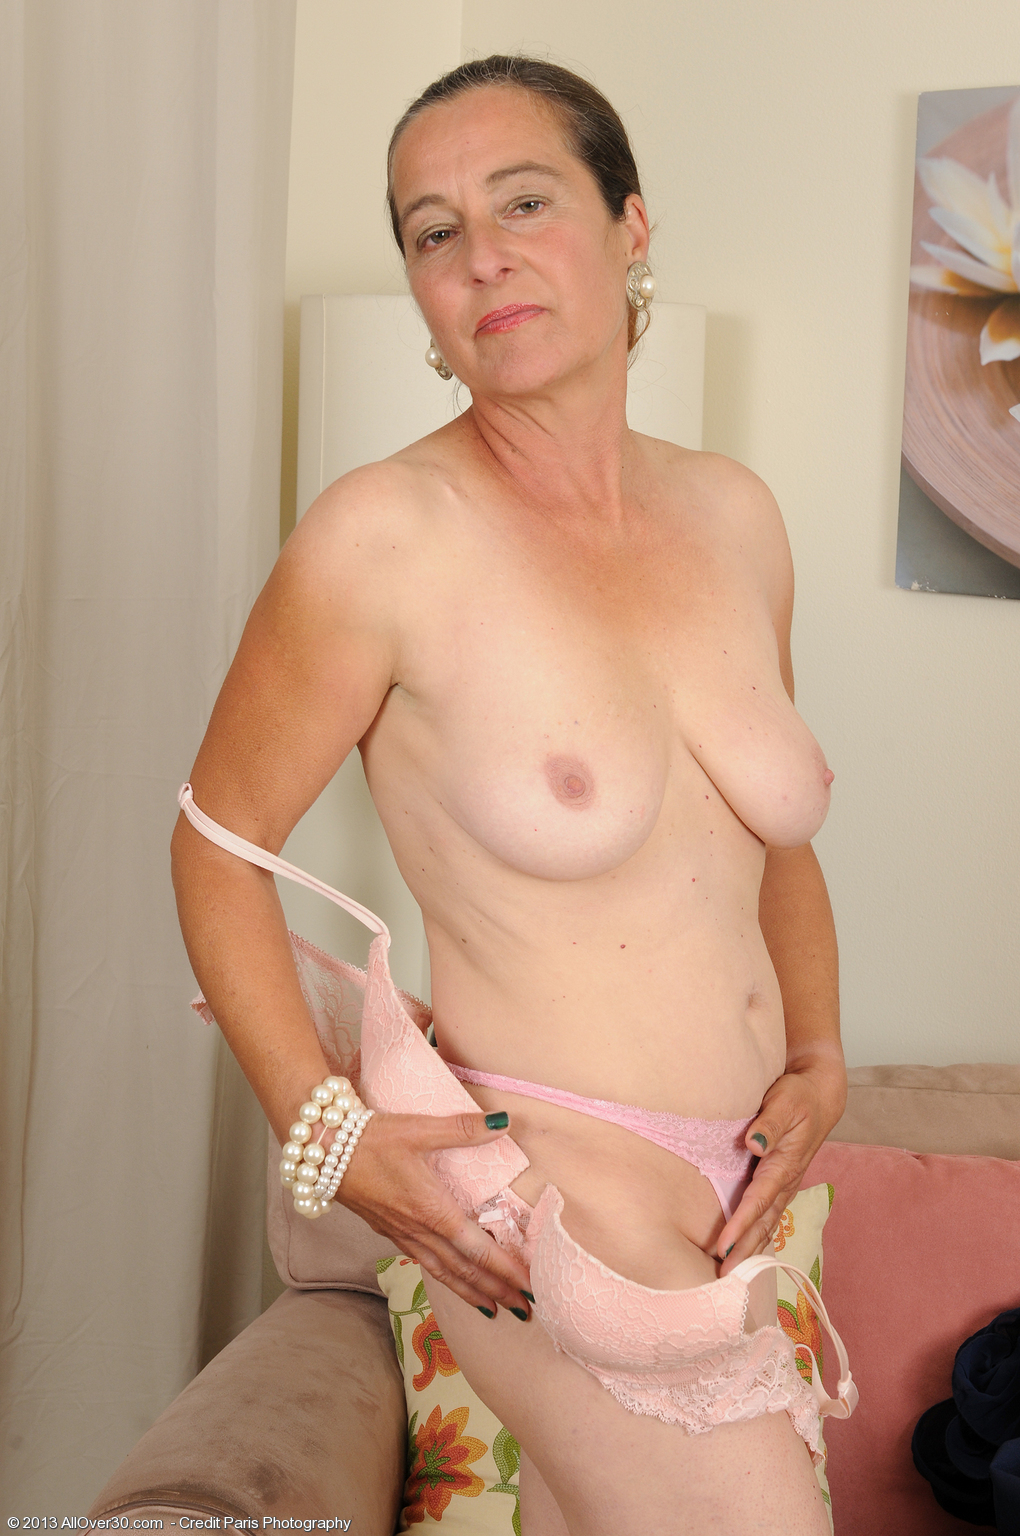 Something a rate grannys nude opinion you